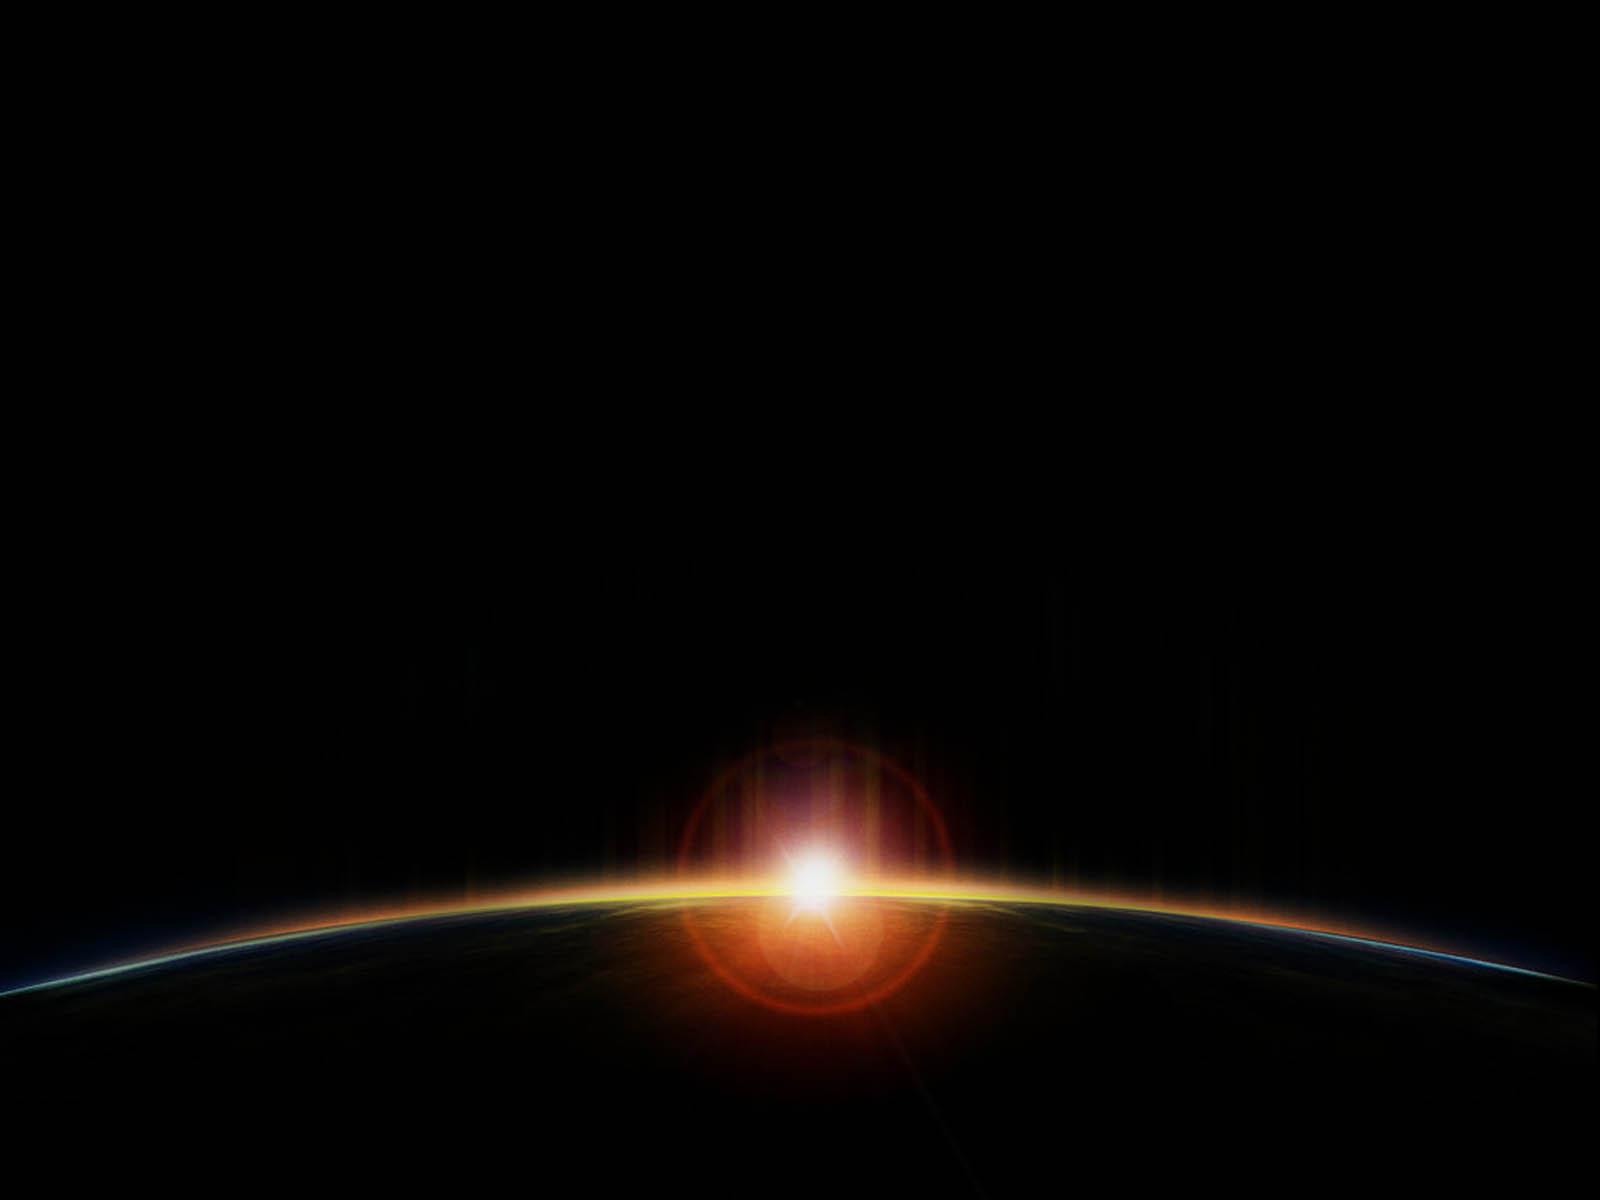 space station sunrise wallpaper - photo #14